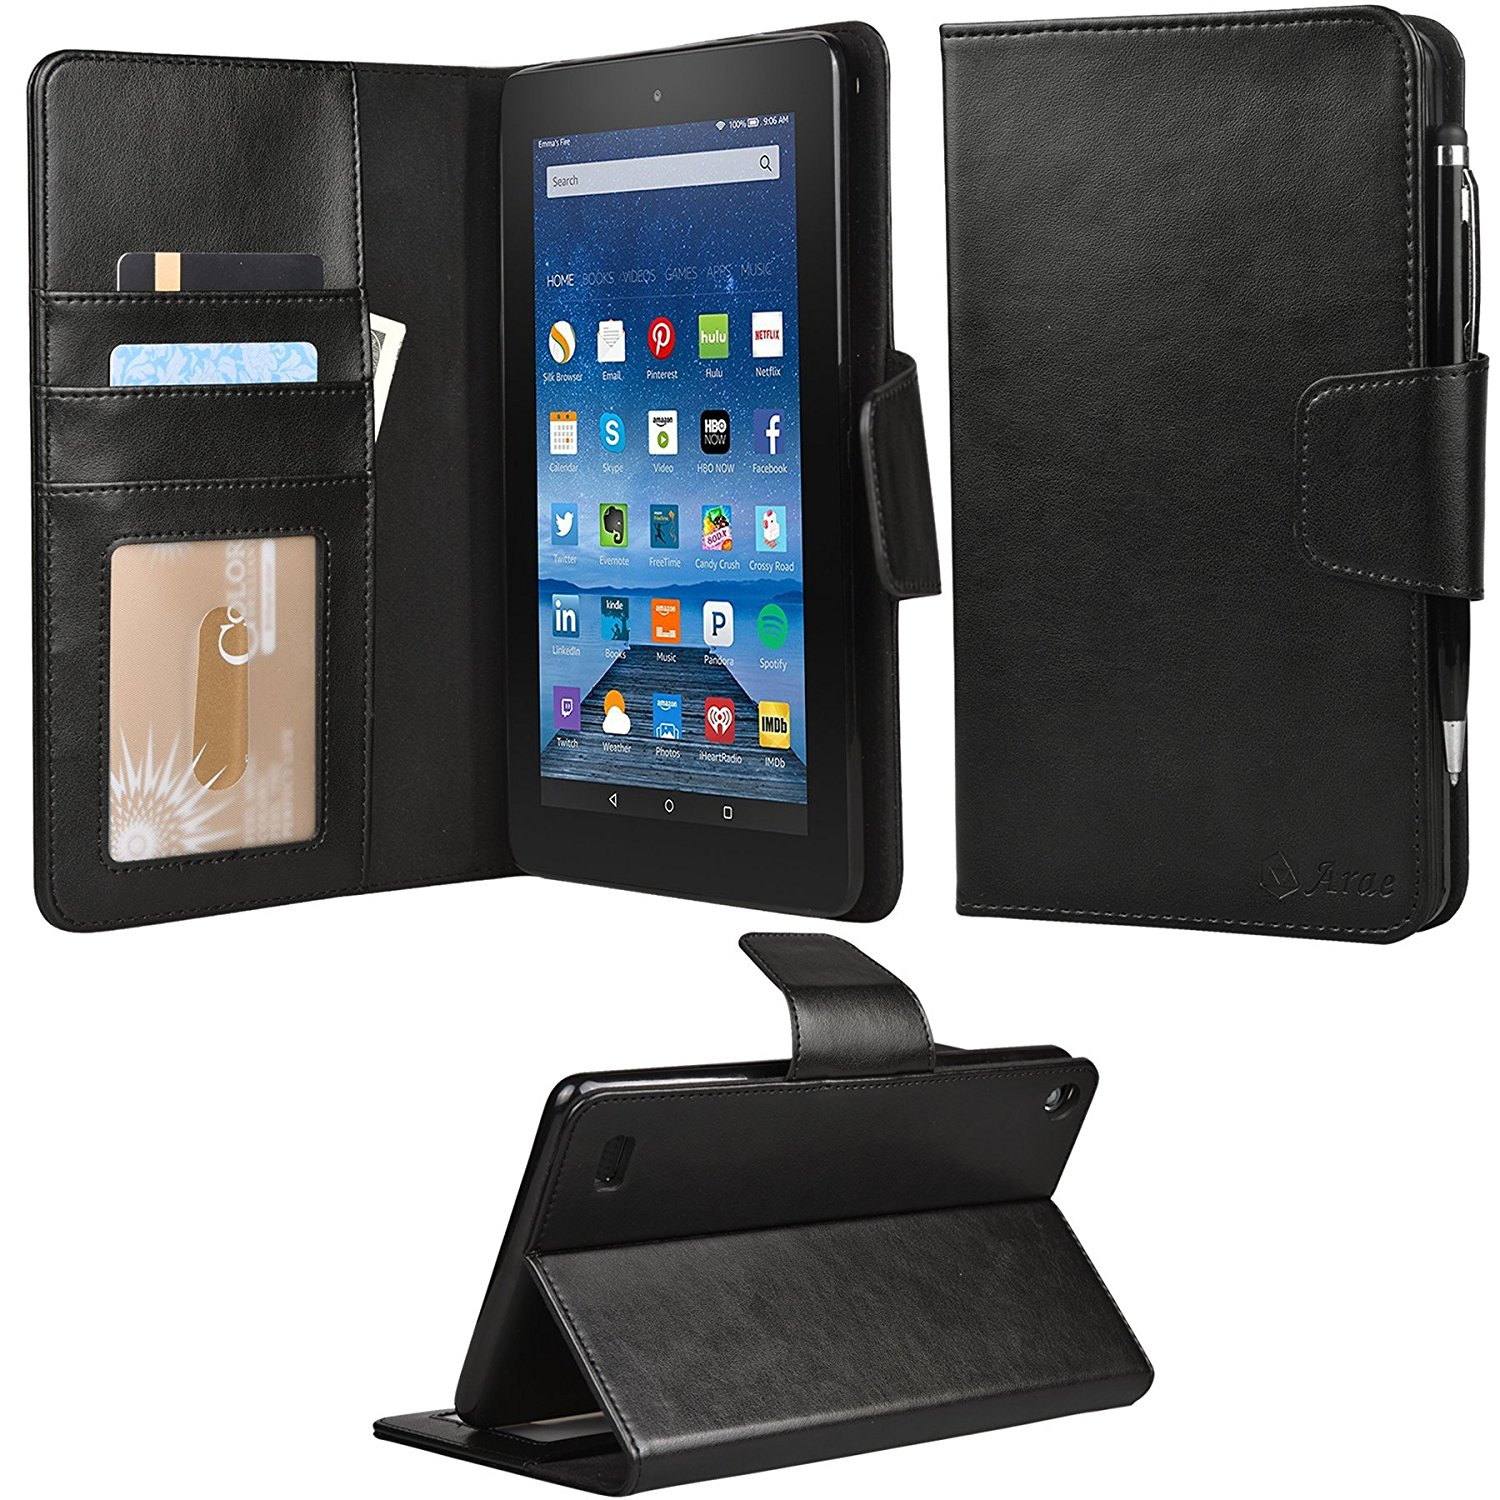 Amazon Fire 7 Case, Arae fire 7 wallet case ,Flip Folio [Kickstand Feature] PU leather wallet case with ID&Credit Card Pockets For amazon fire 7 2015 (Black)